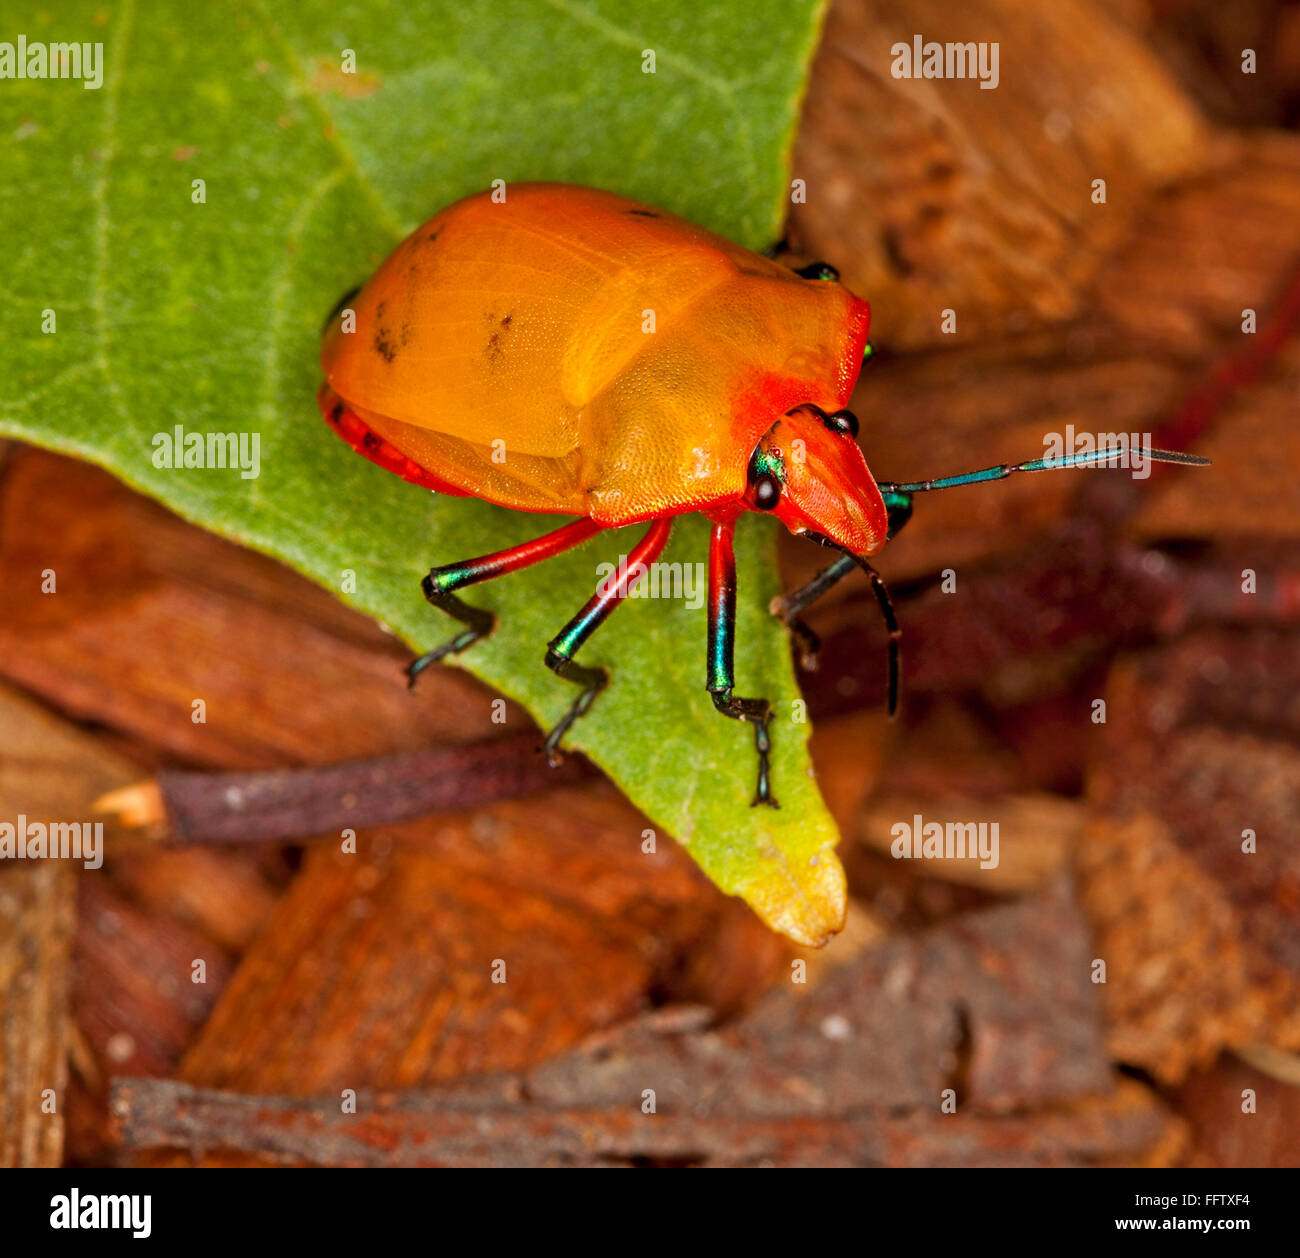 Spectacular vivid orange insect, harlequin / jewel bug, Tectocoris diophthalmus on emerald green hibiscus leaf in - Stock Image